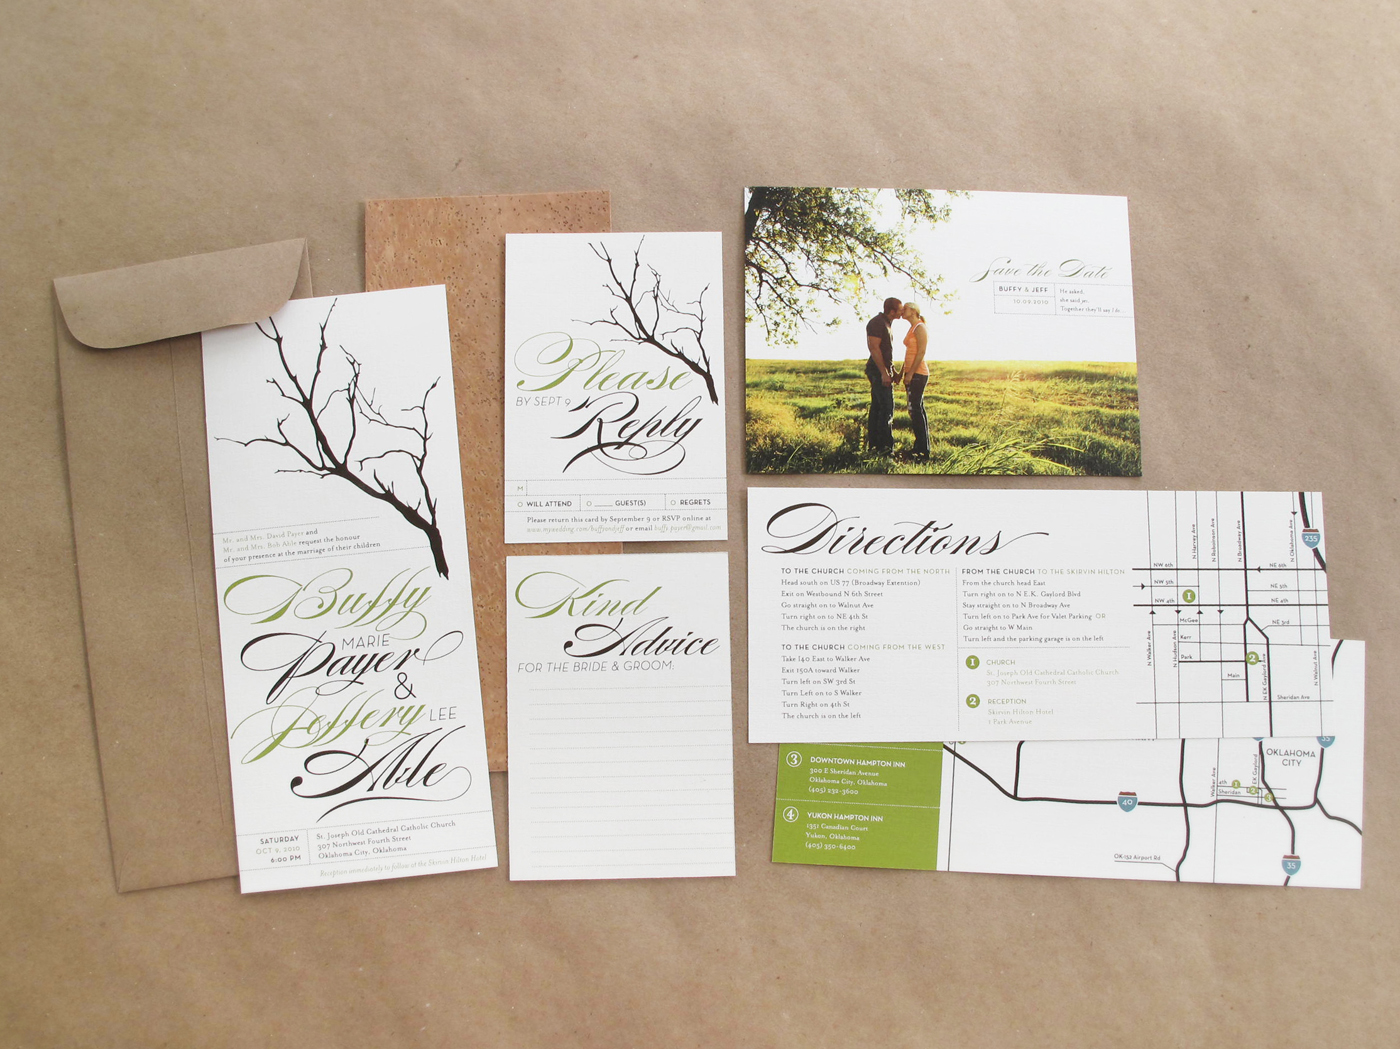 The Best Wedding Invitations: Spring Wedding Invitations: The Best Spring Wedding